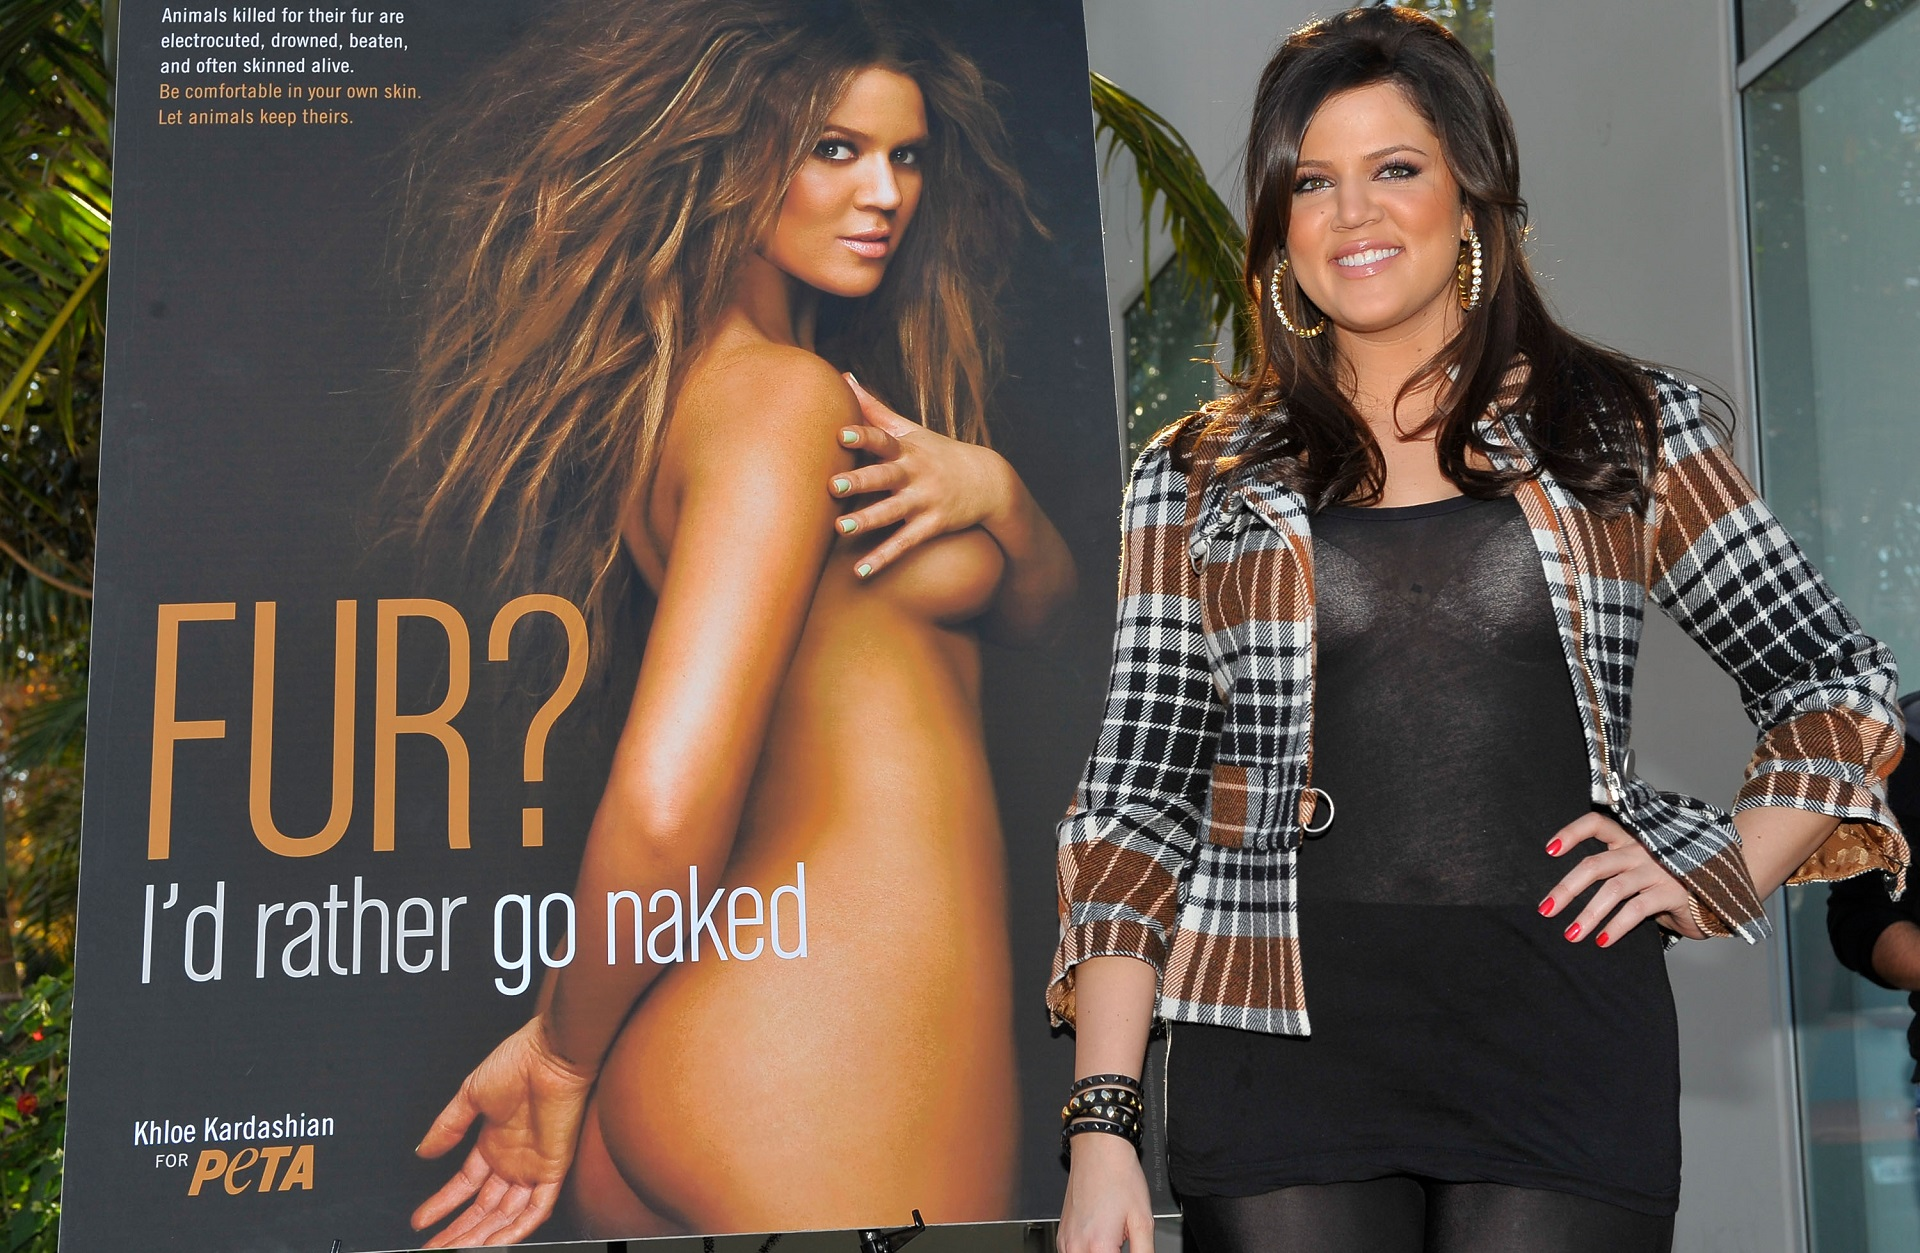 These Kardashian sisters just love near-nude selfies, and we've rounded up 15 of them